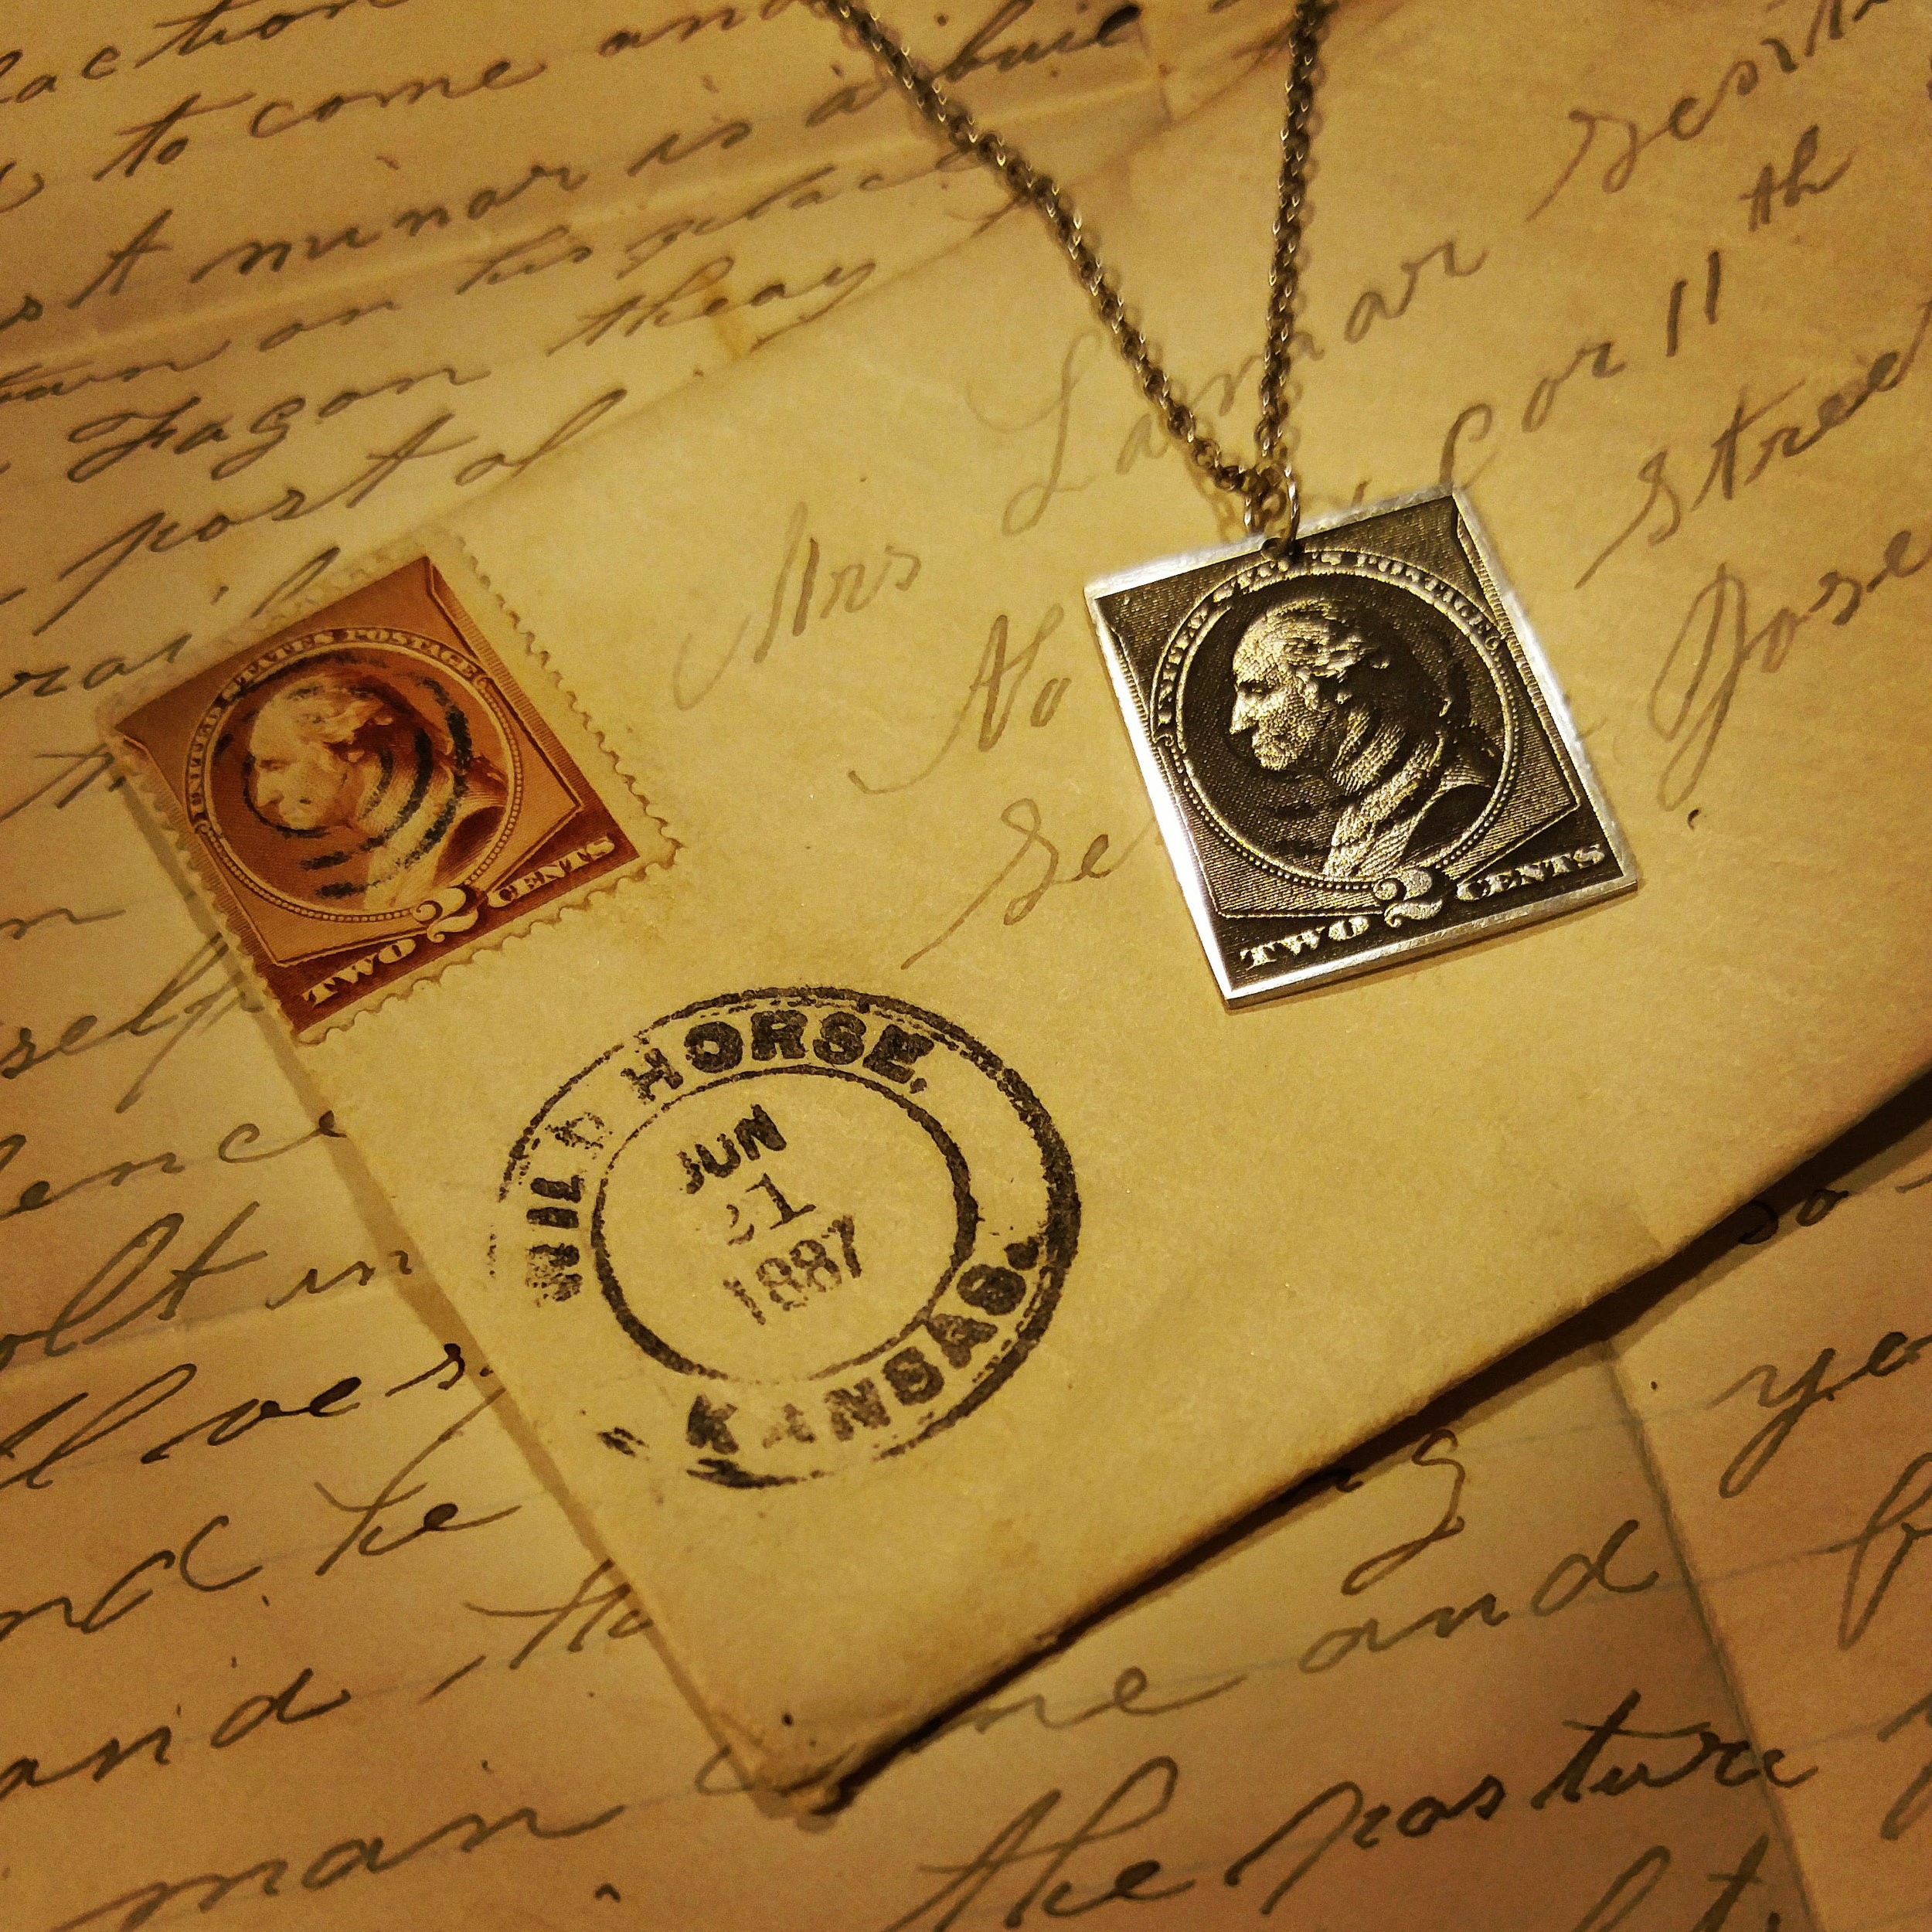 Ask about our Love Letter promotion benefiting the USO in the month of February. Engraved 2 cent stamp from 1887.